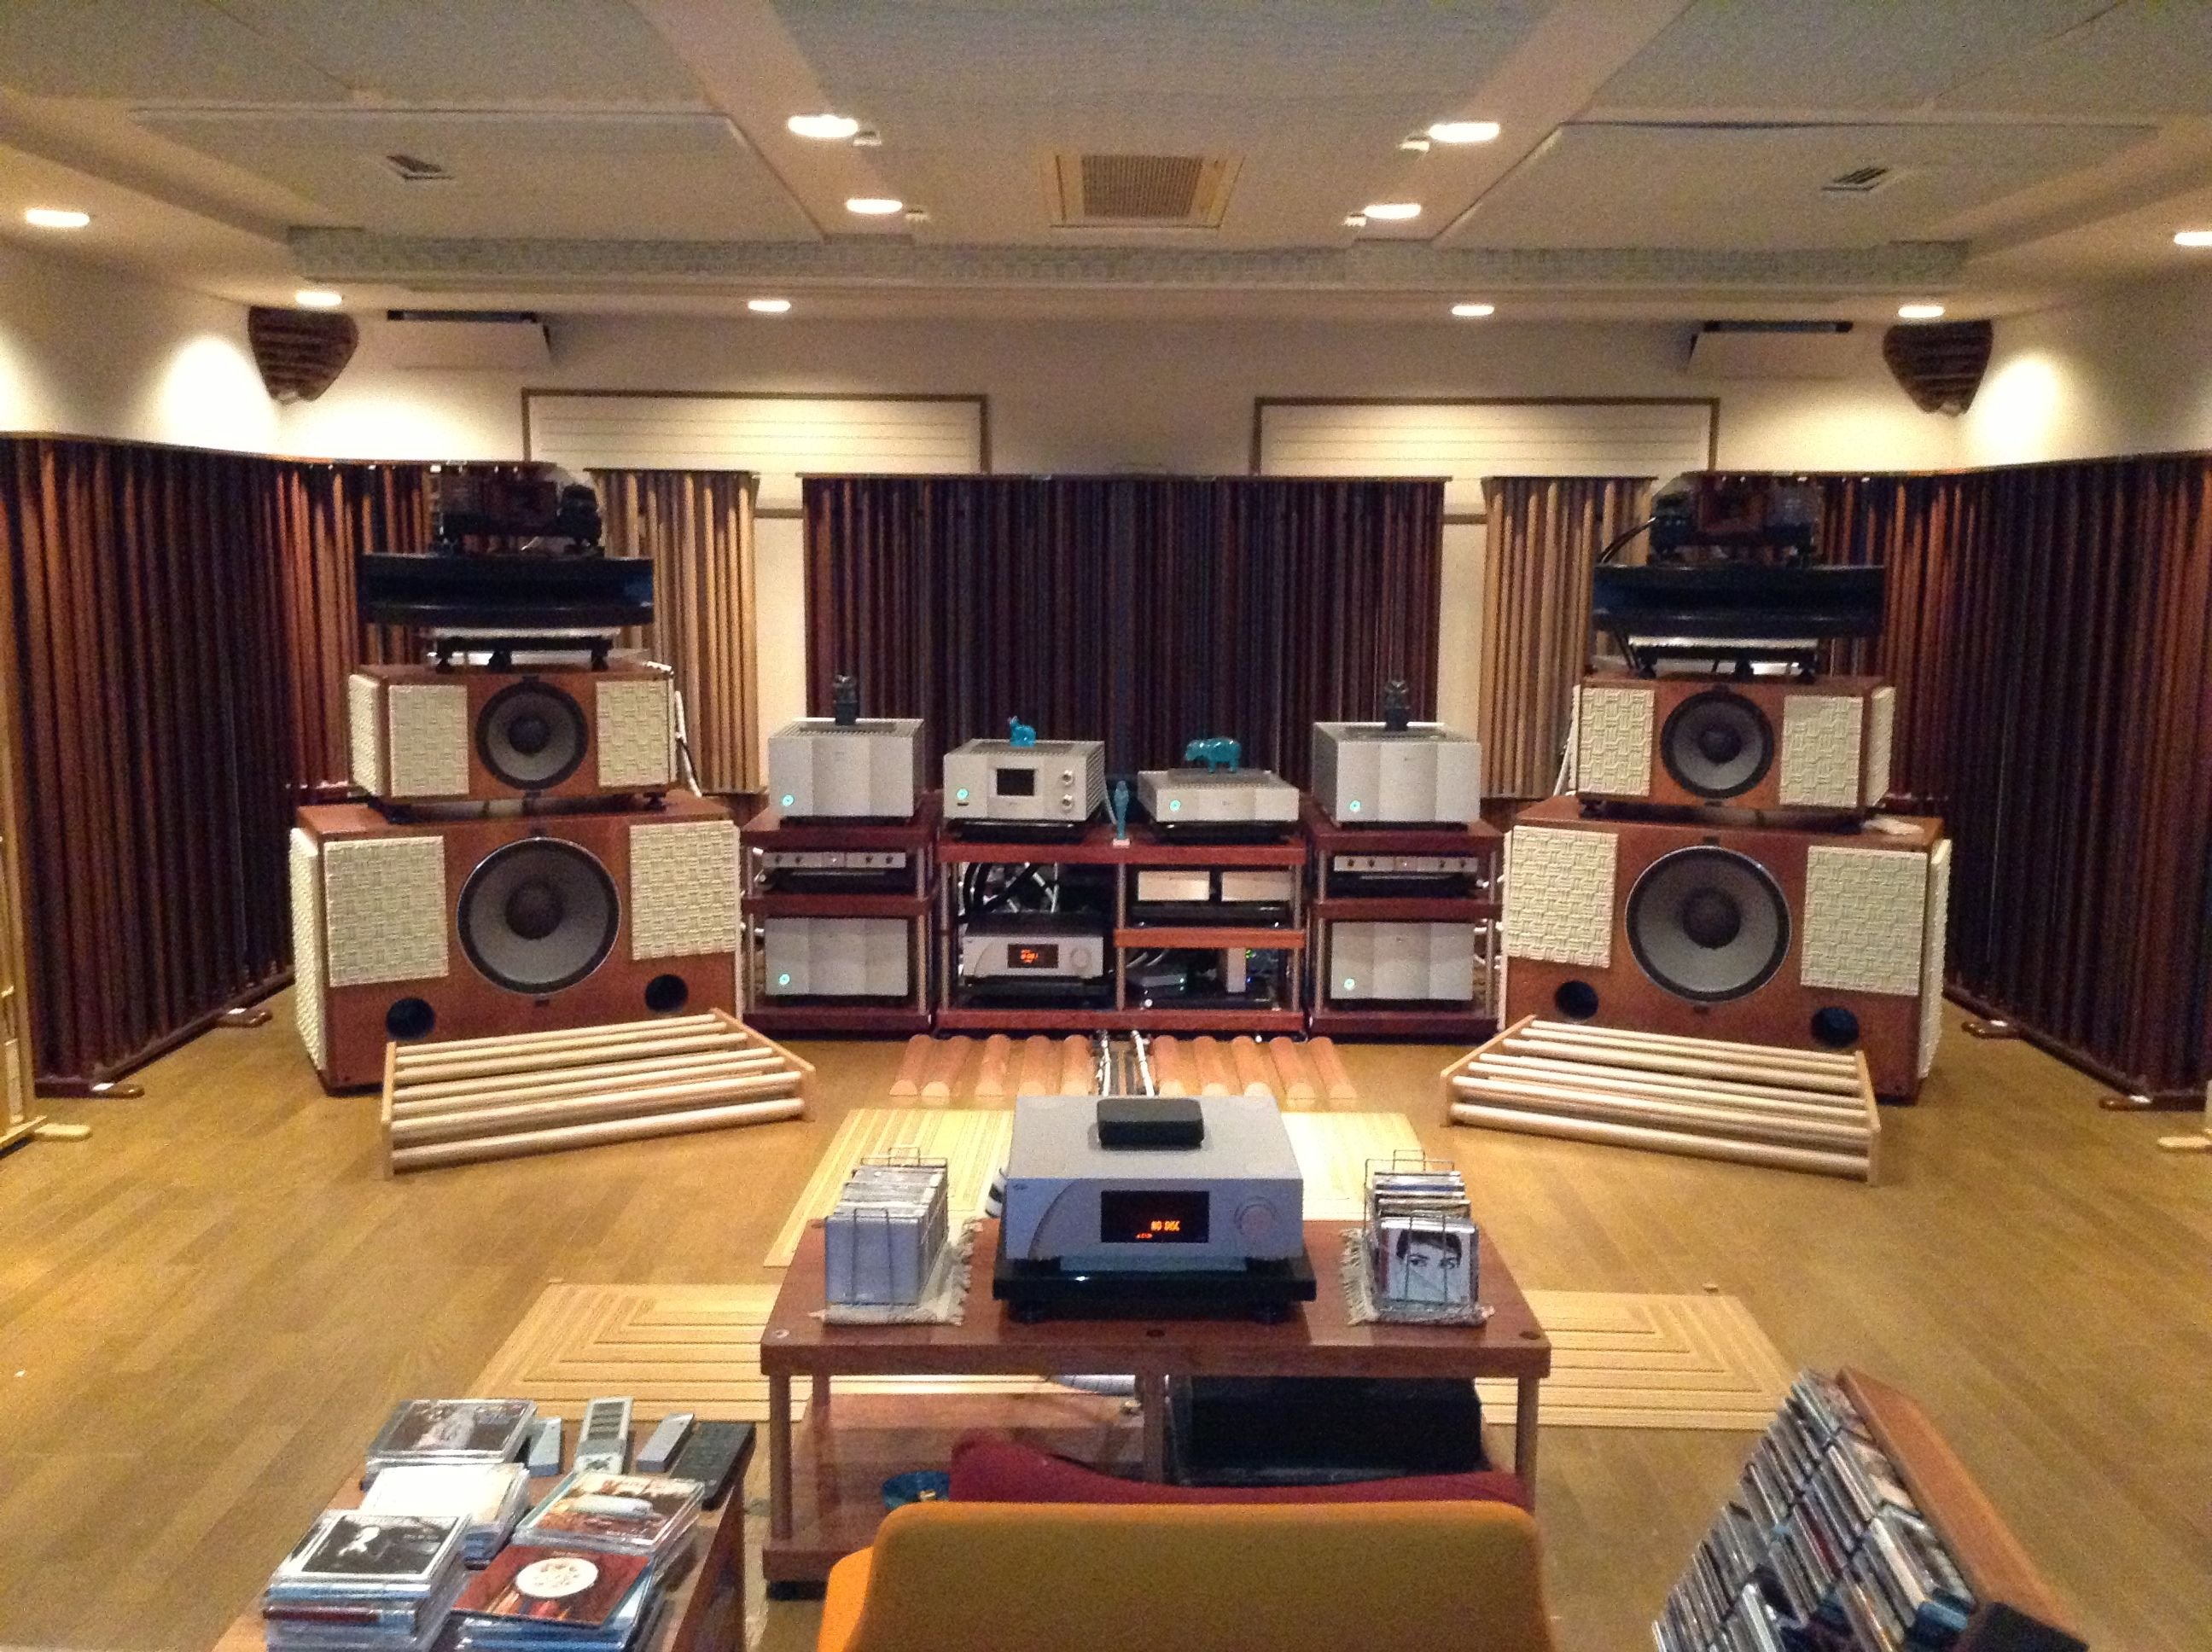 Listening Room (sohnosan  Tokyo)  Speakers  Pinterest. Ikea Dining Room. Personalized Decorative Pillows. Storage Boxes Cardboard Decorative. How To Decorate Console Table. Decorative Italian Wall Tiles. Natural Room Freshener. Dining Room Booth Style Seating. Wood Room Divider